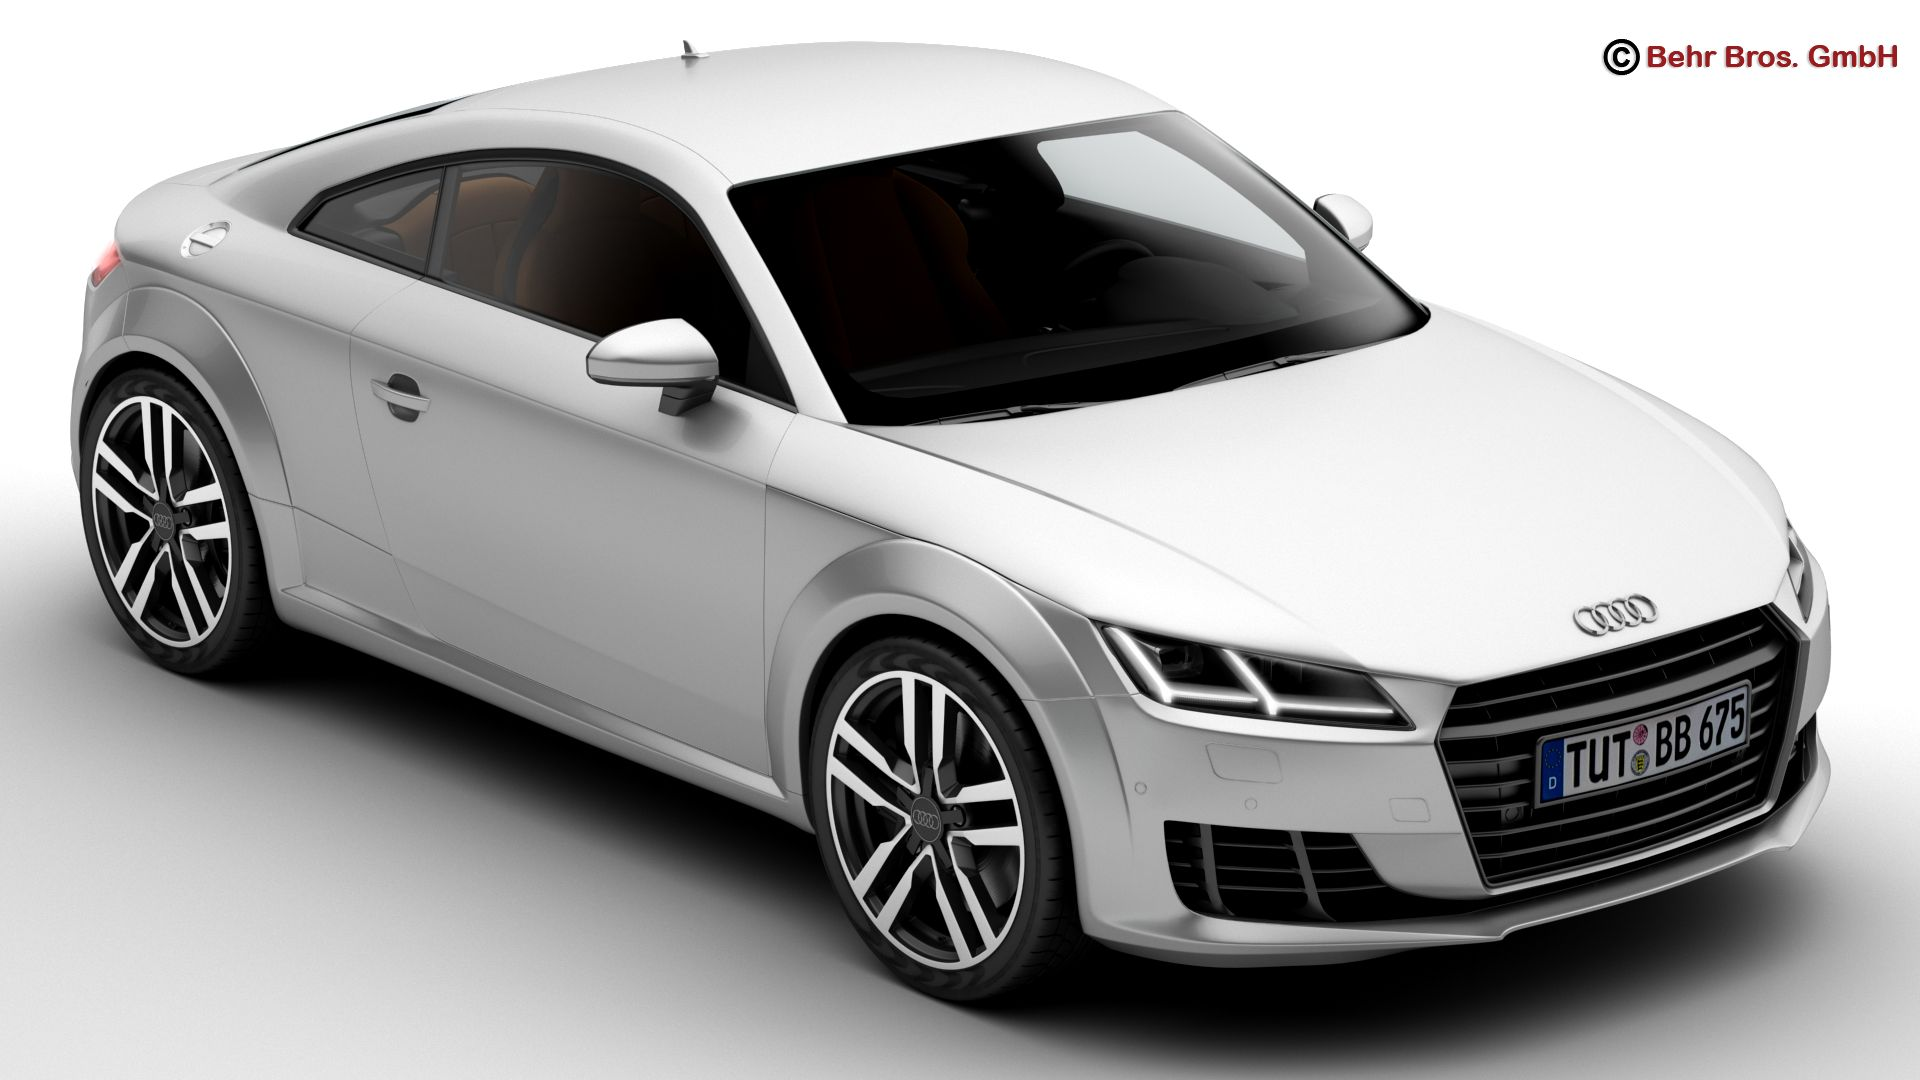 audi tt coupe 2015 3d model 3ds max fbx c4d lwo ma mb obj 203321